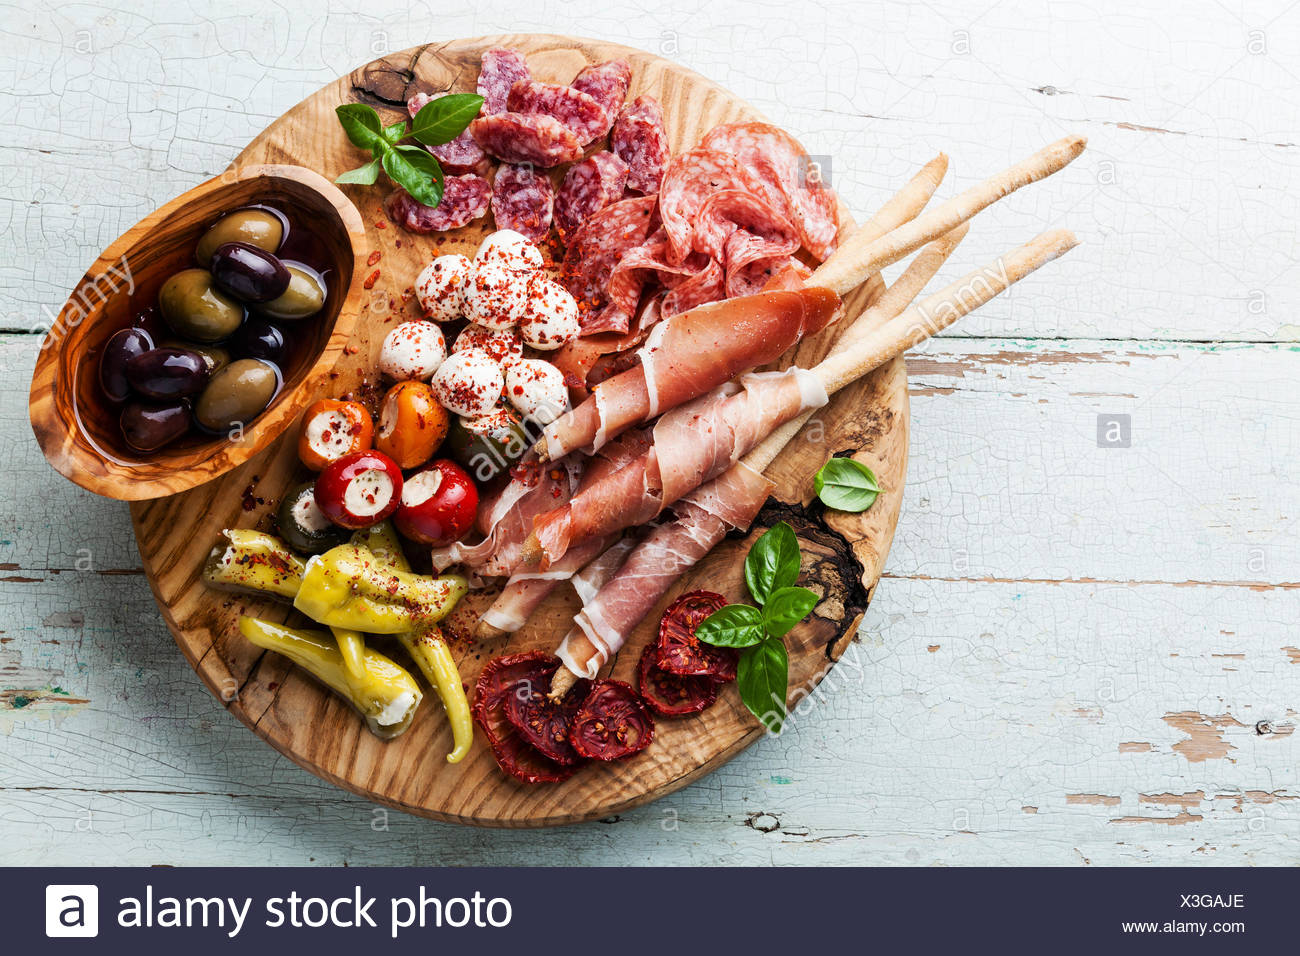 Antipasto Platter Cold meat plate with grissini bread sticks on wooden background - Stock Image